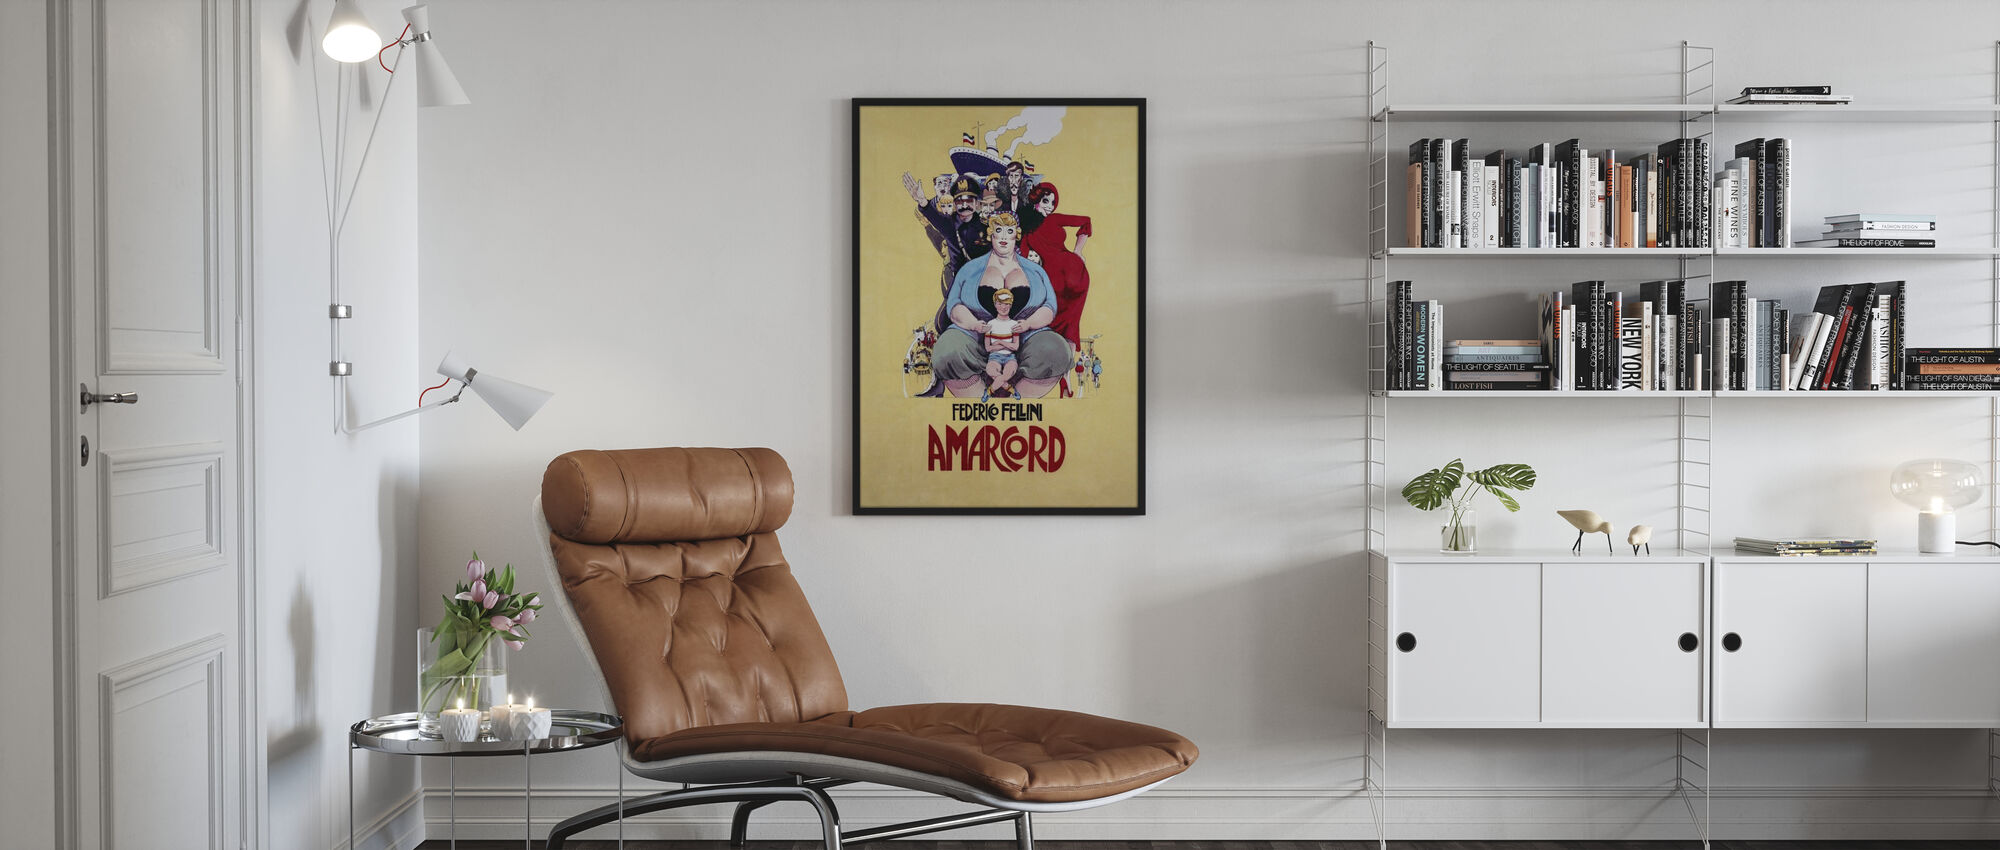 Amarcord - Poster - Living Room